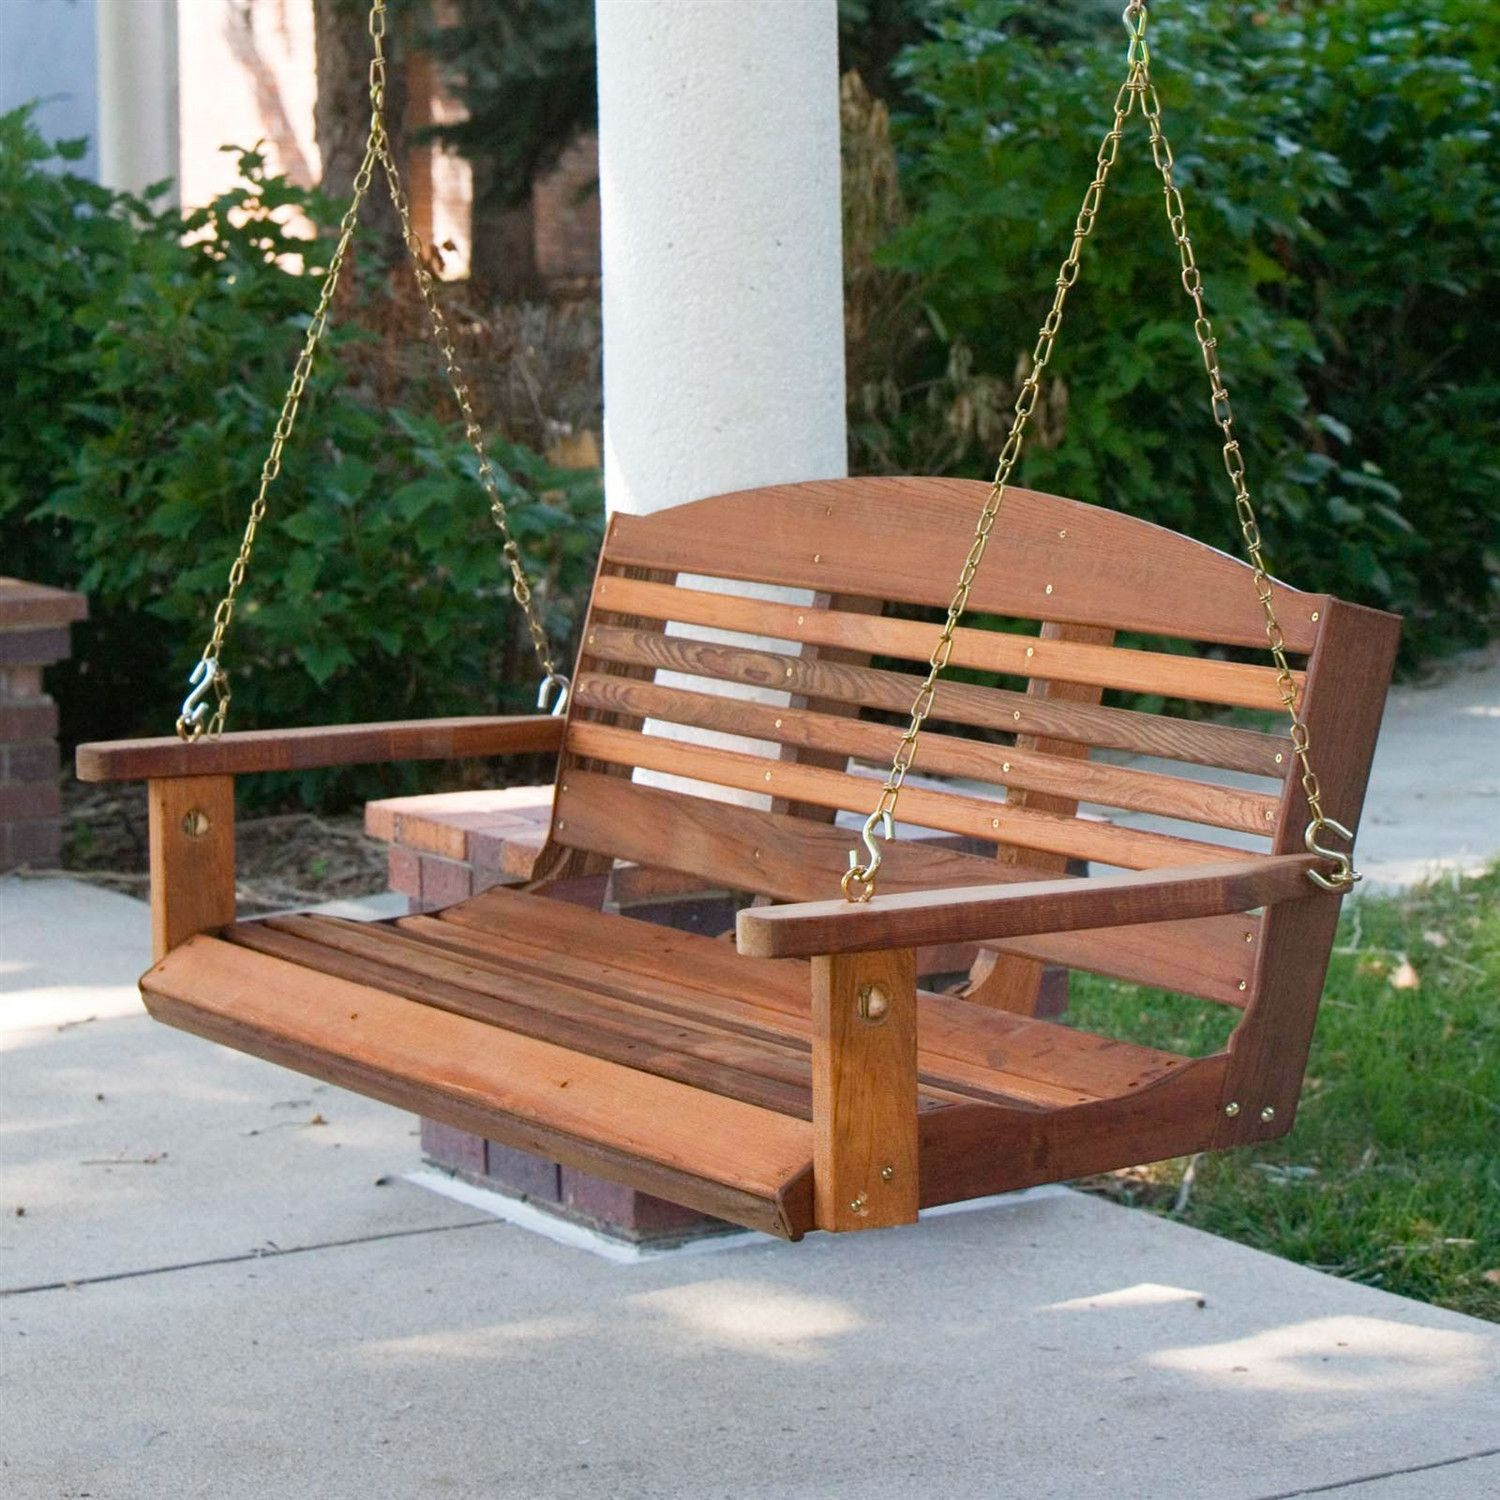 Classic 4Ft Porch Swing in Red Cedar Wood Amish Made in